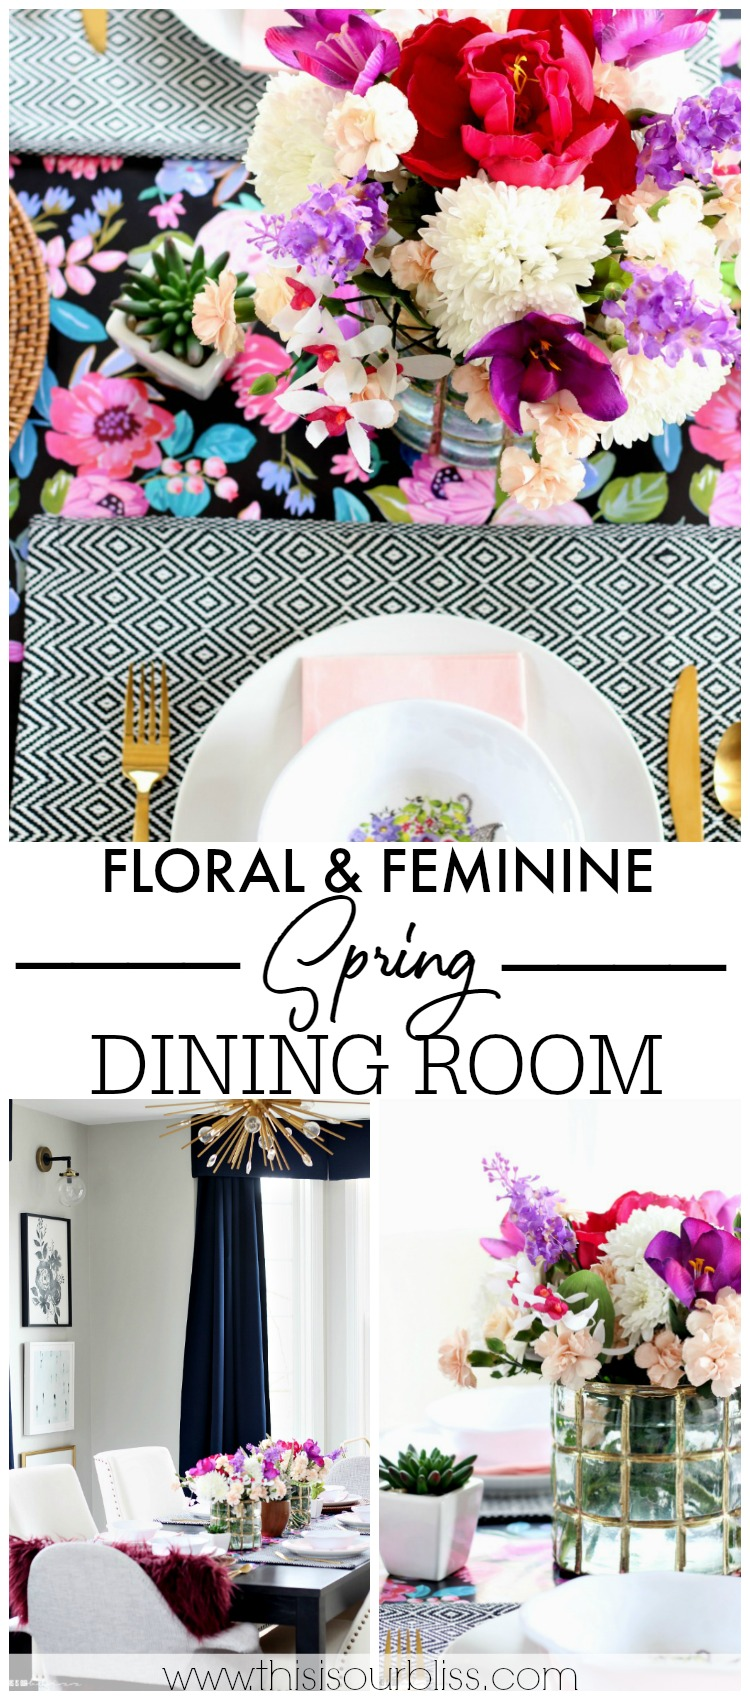 Floral and Feminine Spring Dining Room Tour - Bright florals, with pattern play - This is our Bliss